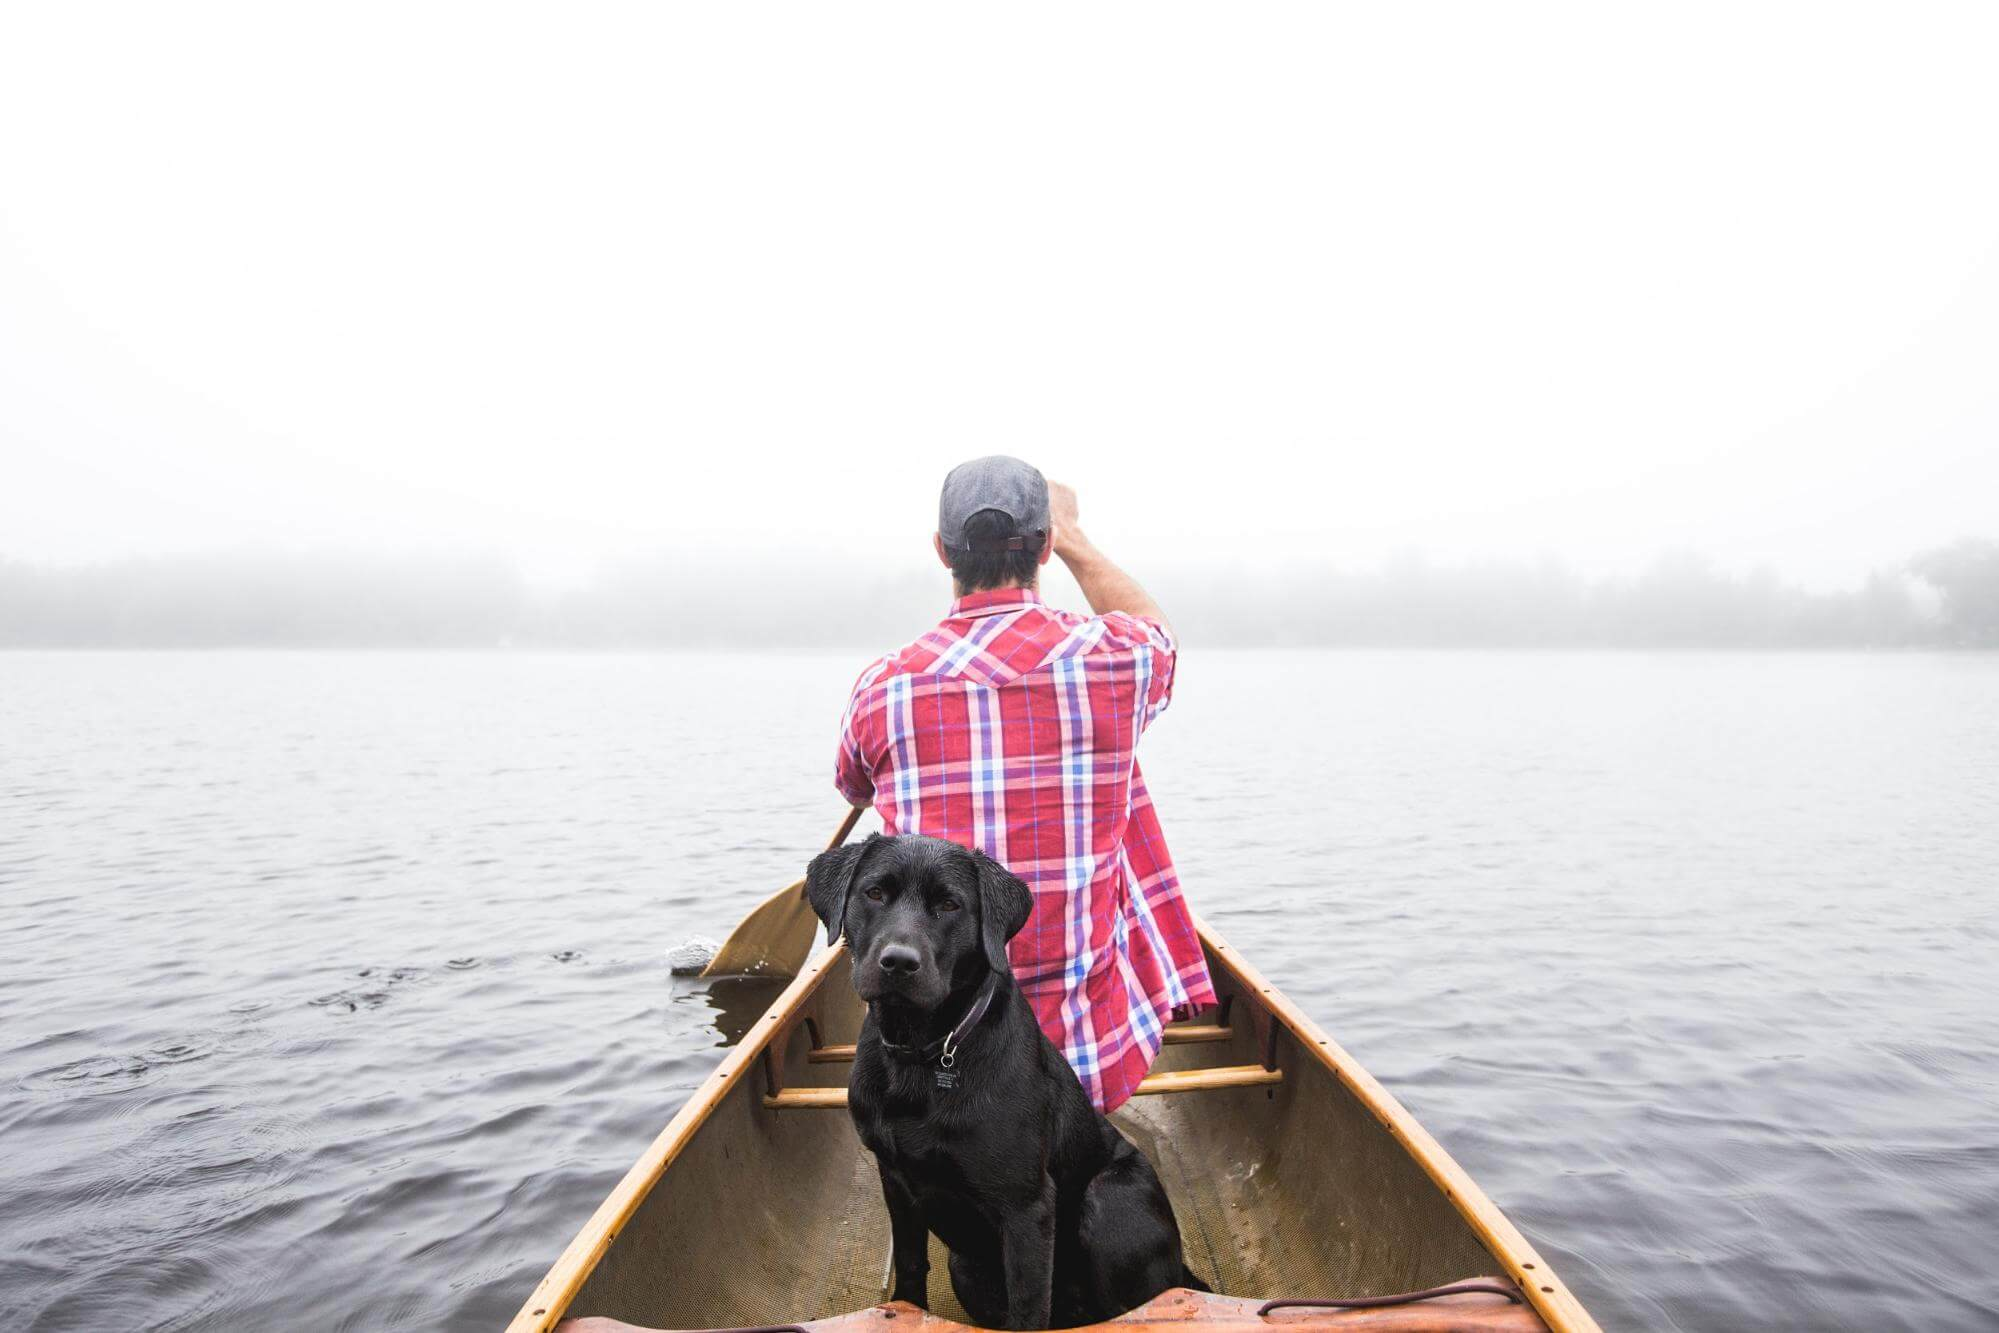 A man and a dog on a boat